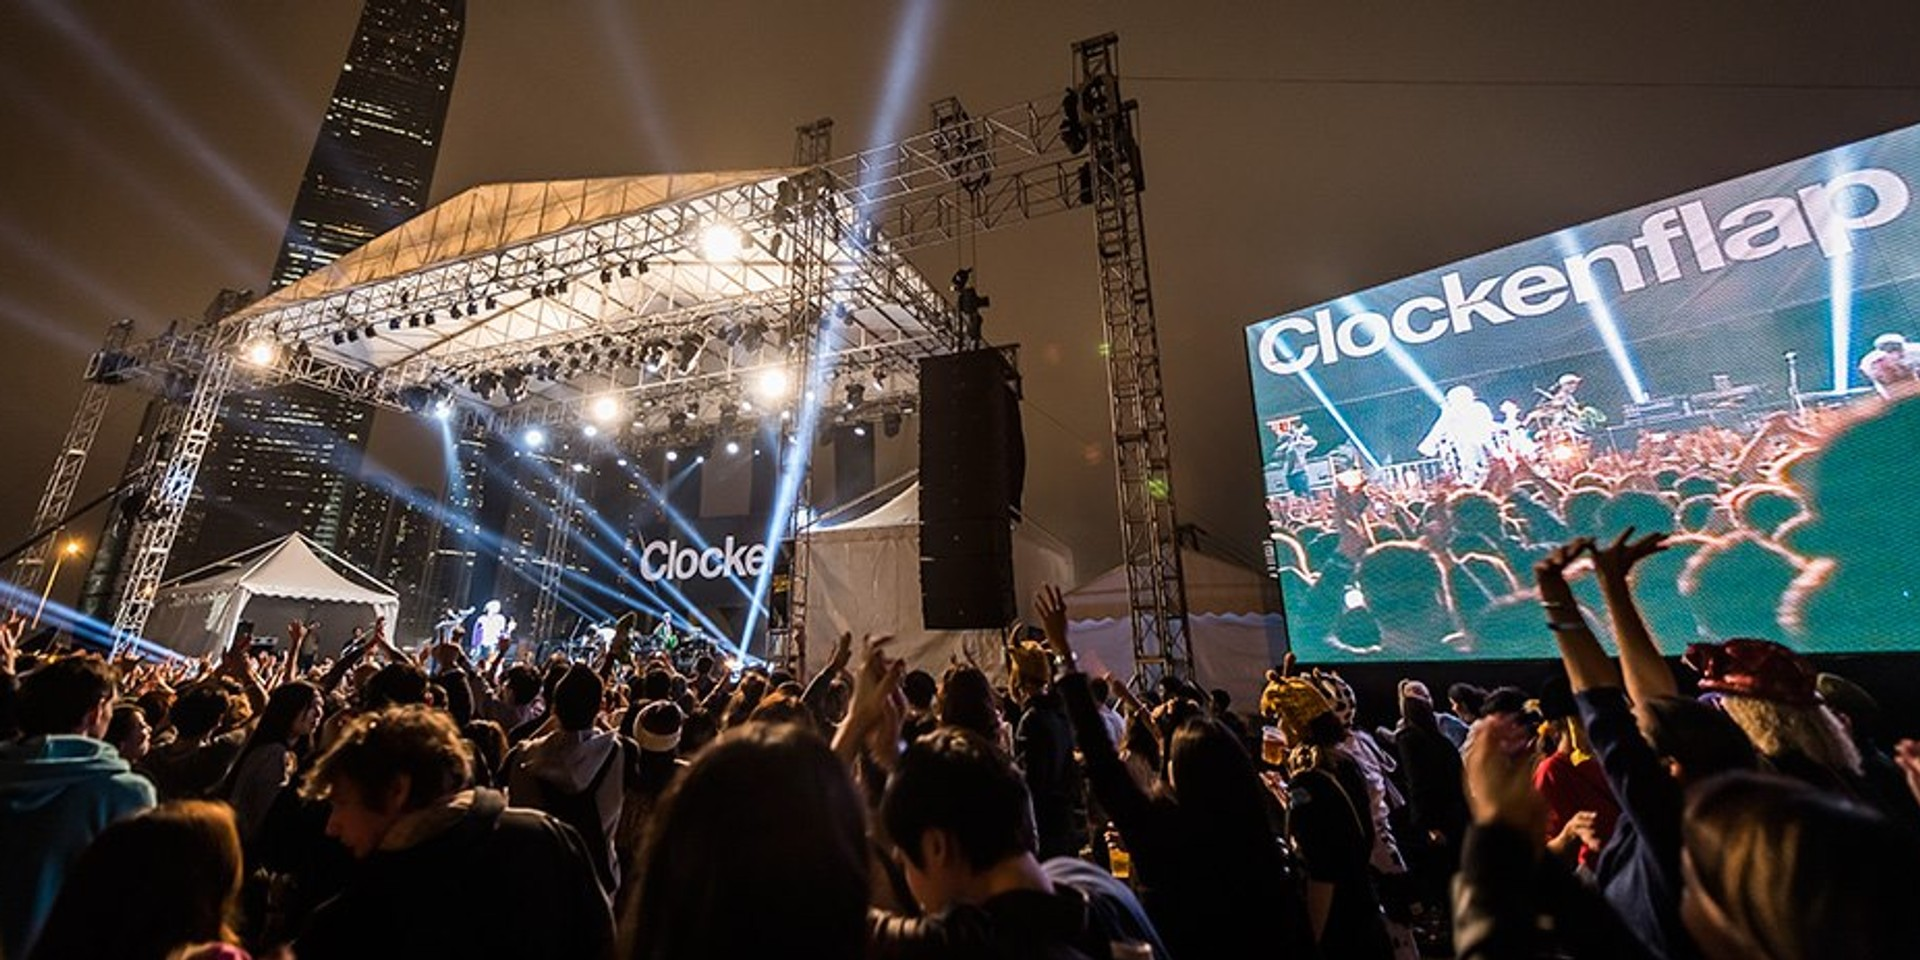 Hong Kong's Clockenflap Festival to return this year, tickets now available